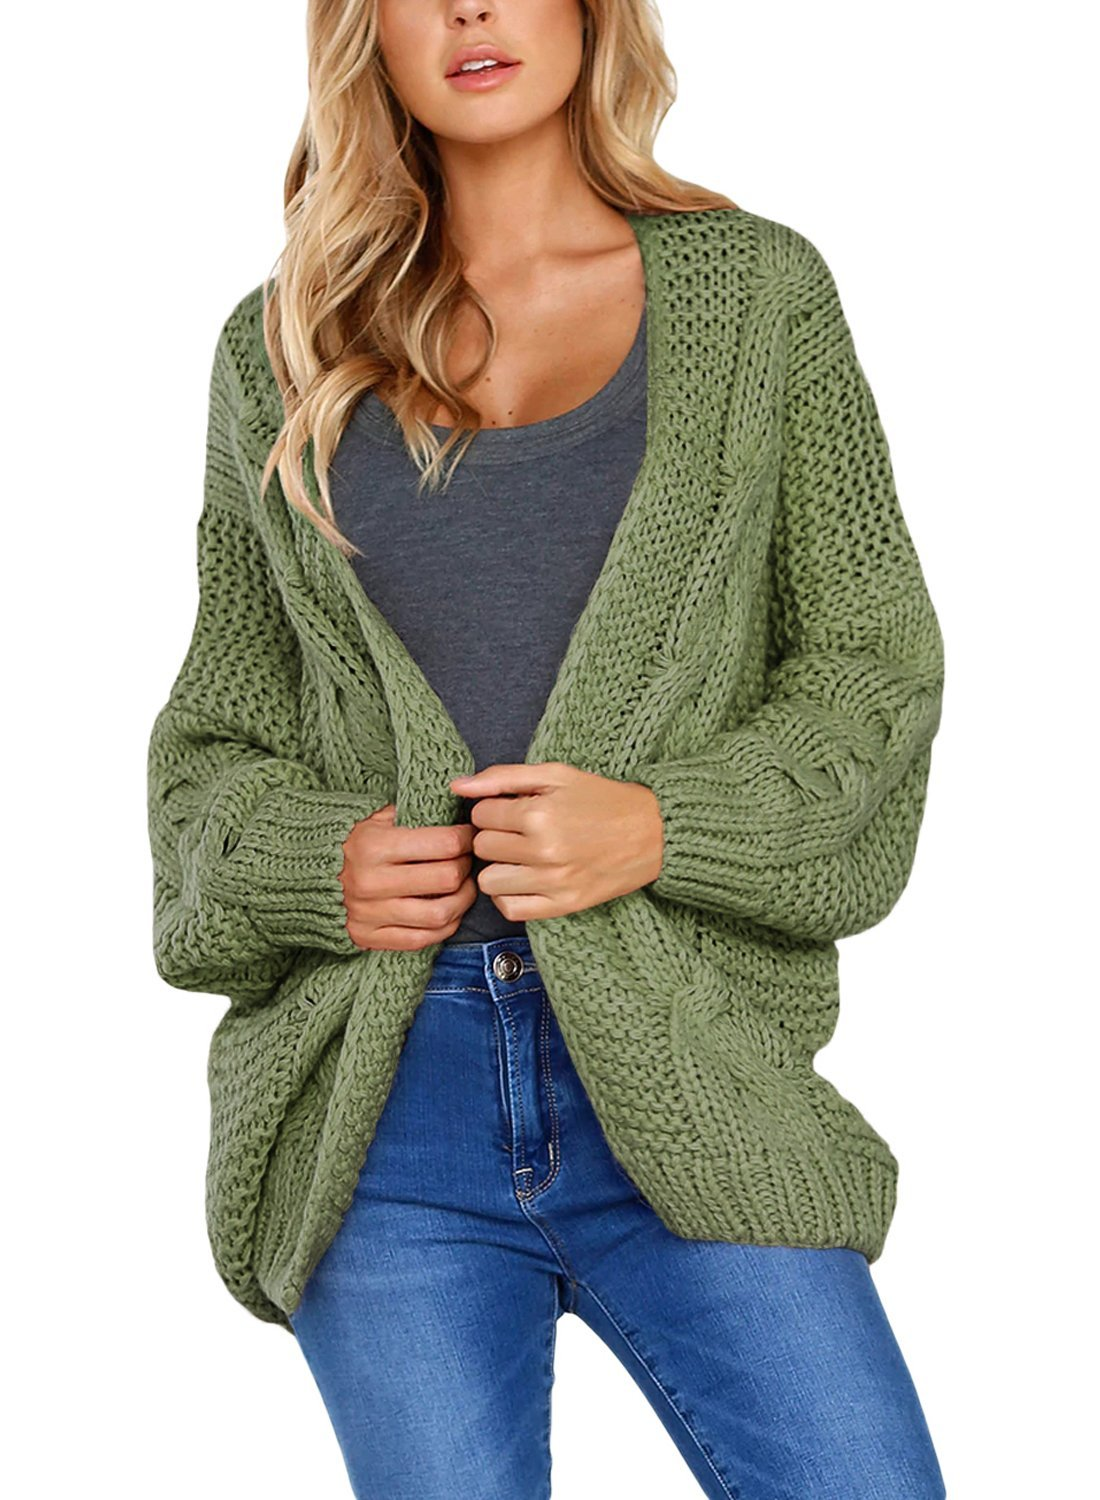 Women's Casual Long Sleeve Open Front Chunky Cable Knit Cardigan Sweaters Loose Oversized Outwear Coat Jacket Green M 8 10